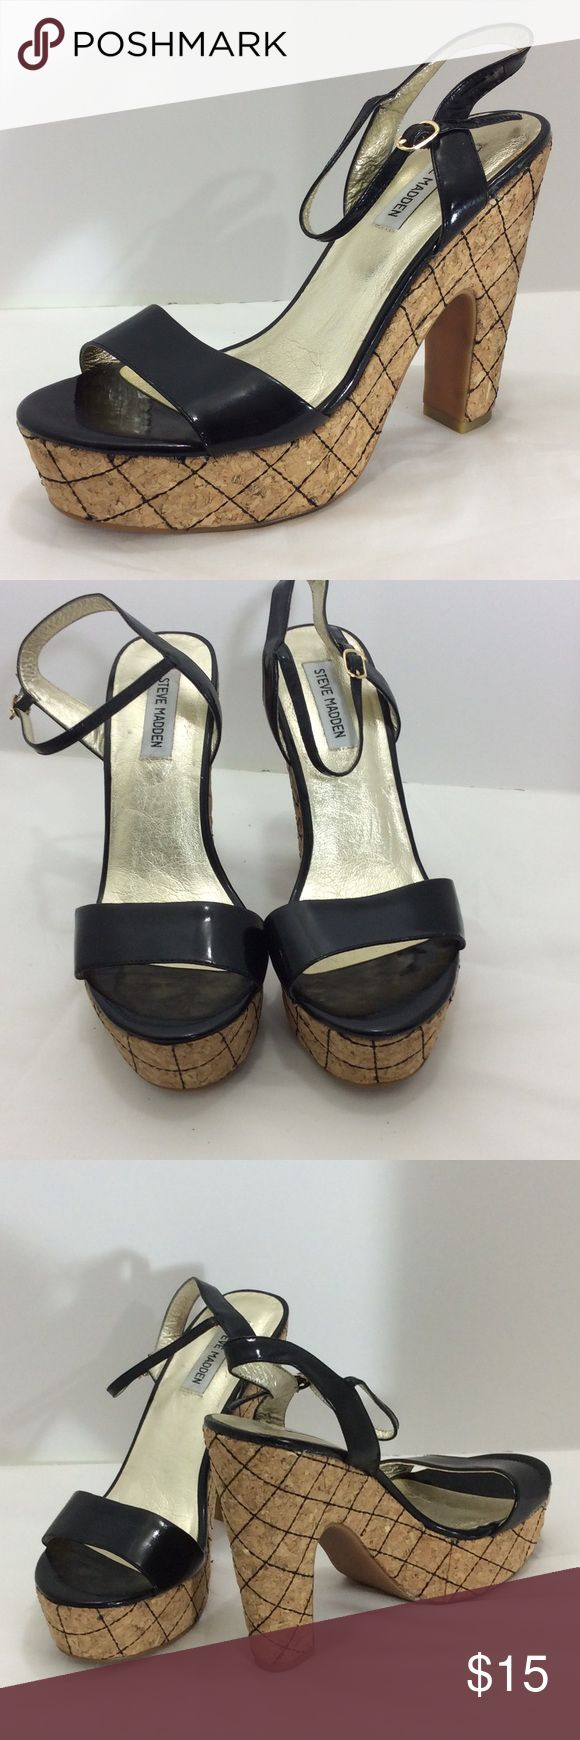 Steve Madden black size 10 shoes Steve Madden black size 10 shoes Steve Madden Shoes Sandals